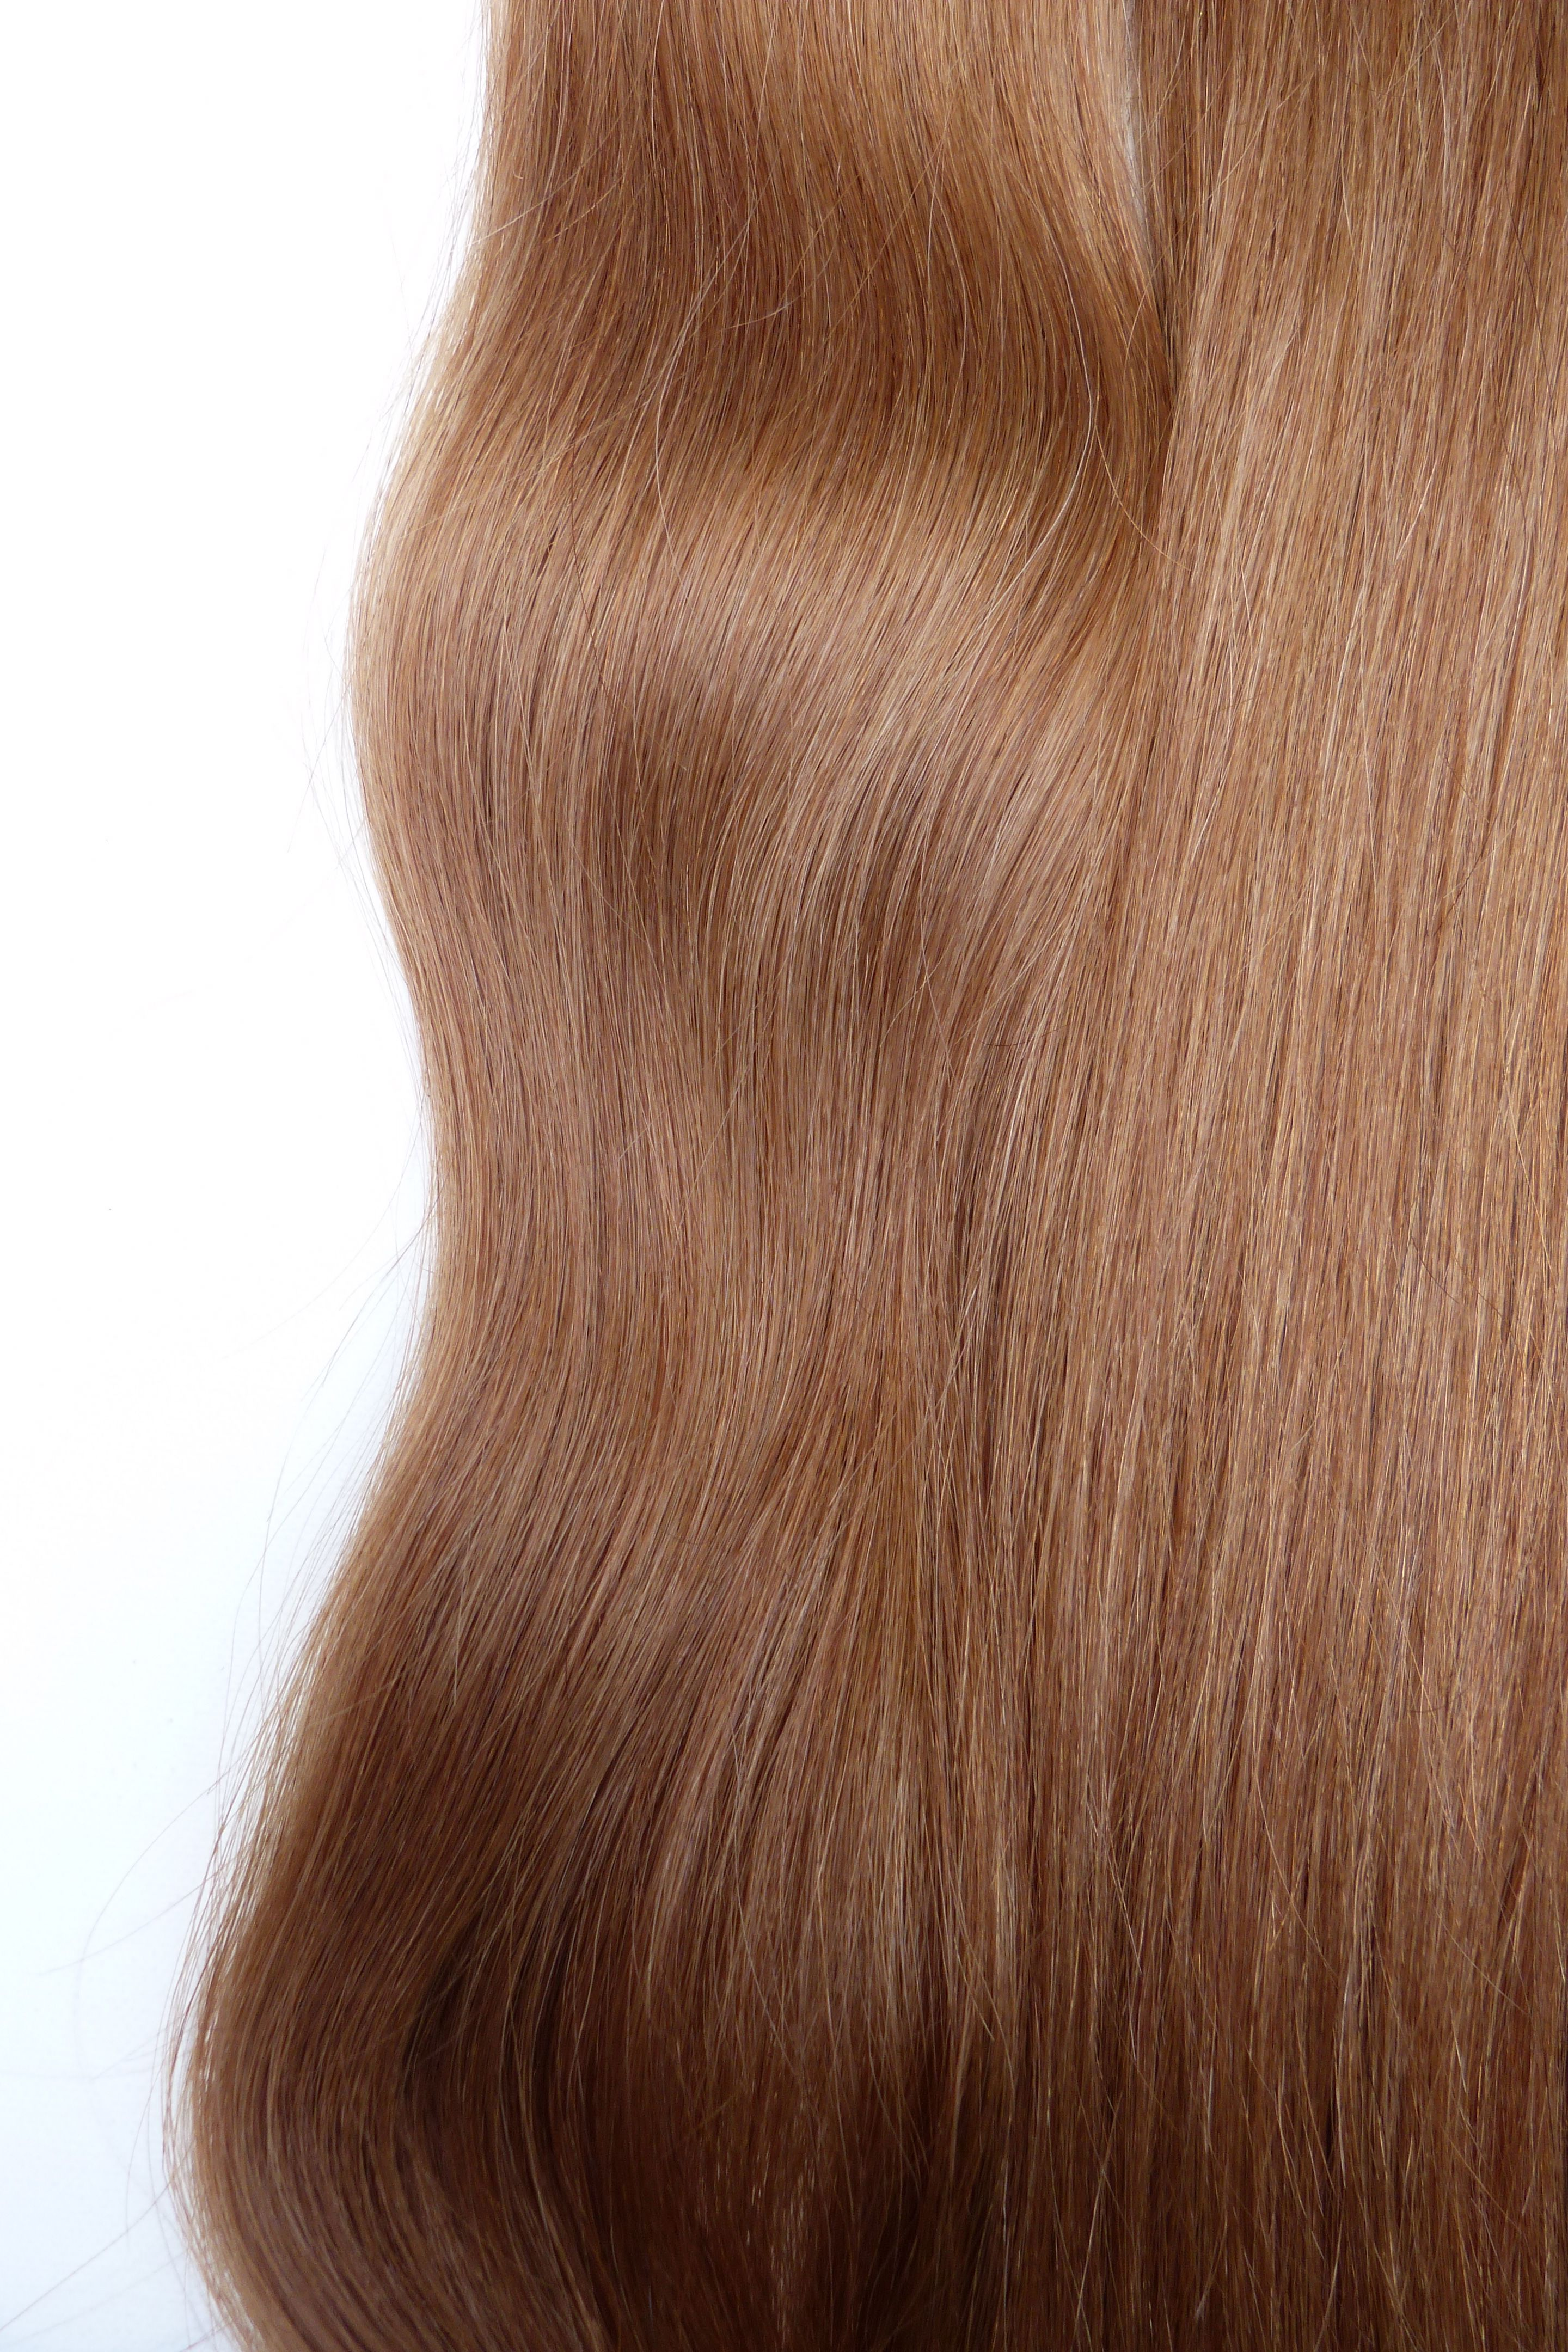 Eurasian Virgin Hair Extensions In Bulk Wefts Tips And Clips The